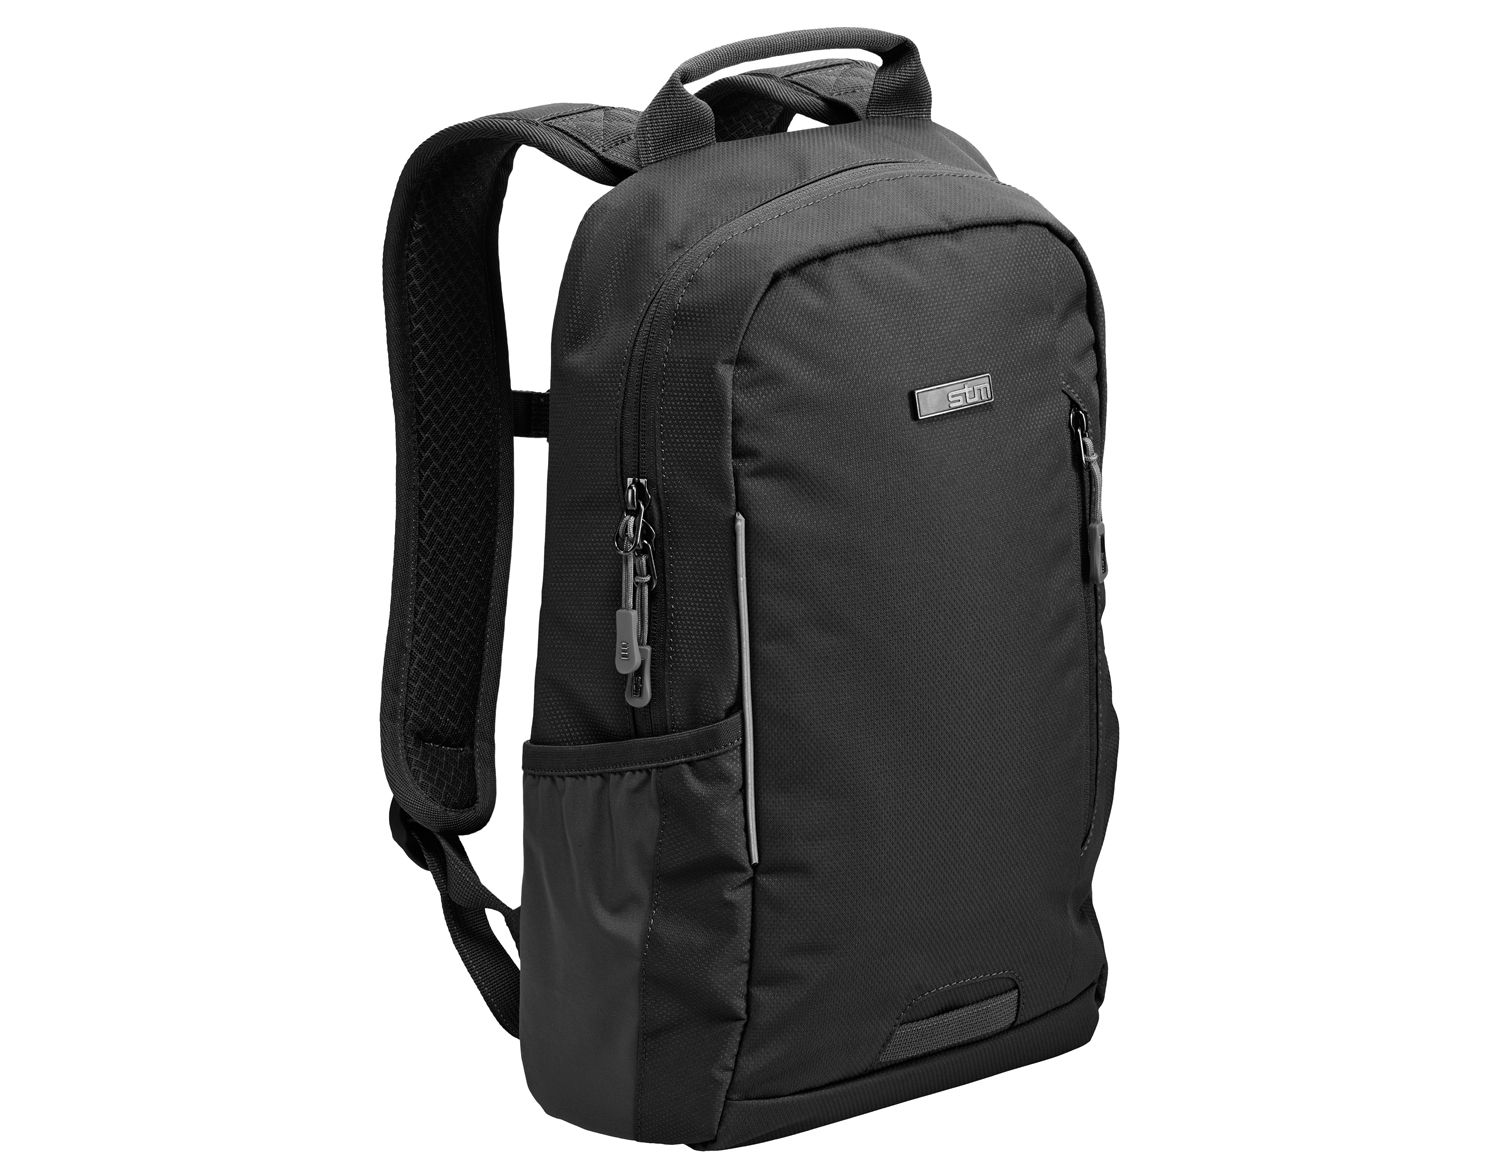 The Aero Backpack from STM Bags Review - Small Yet Spacious